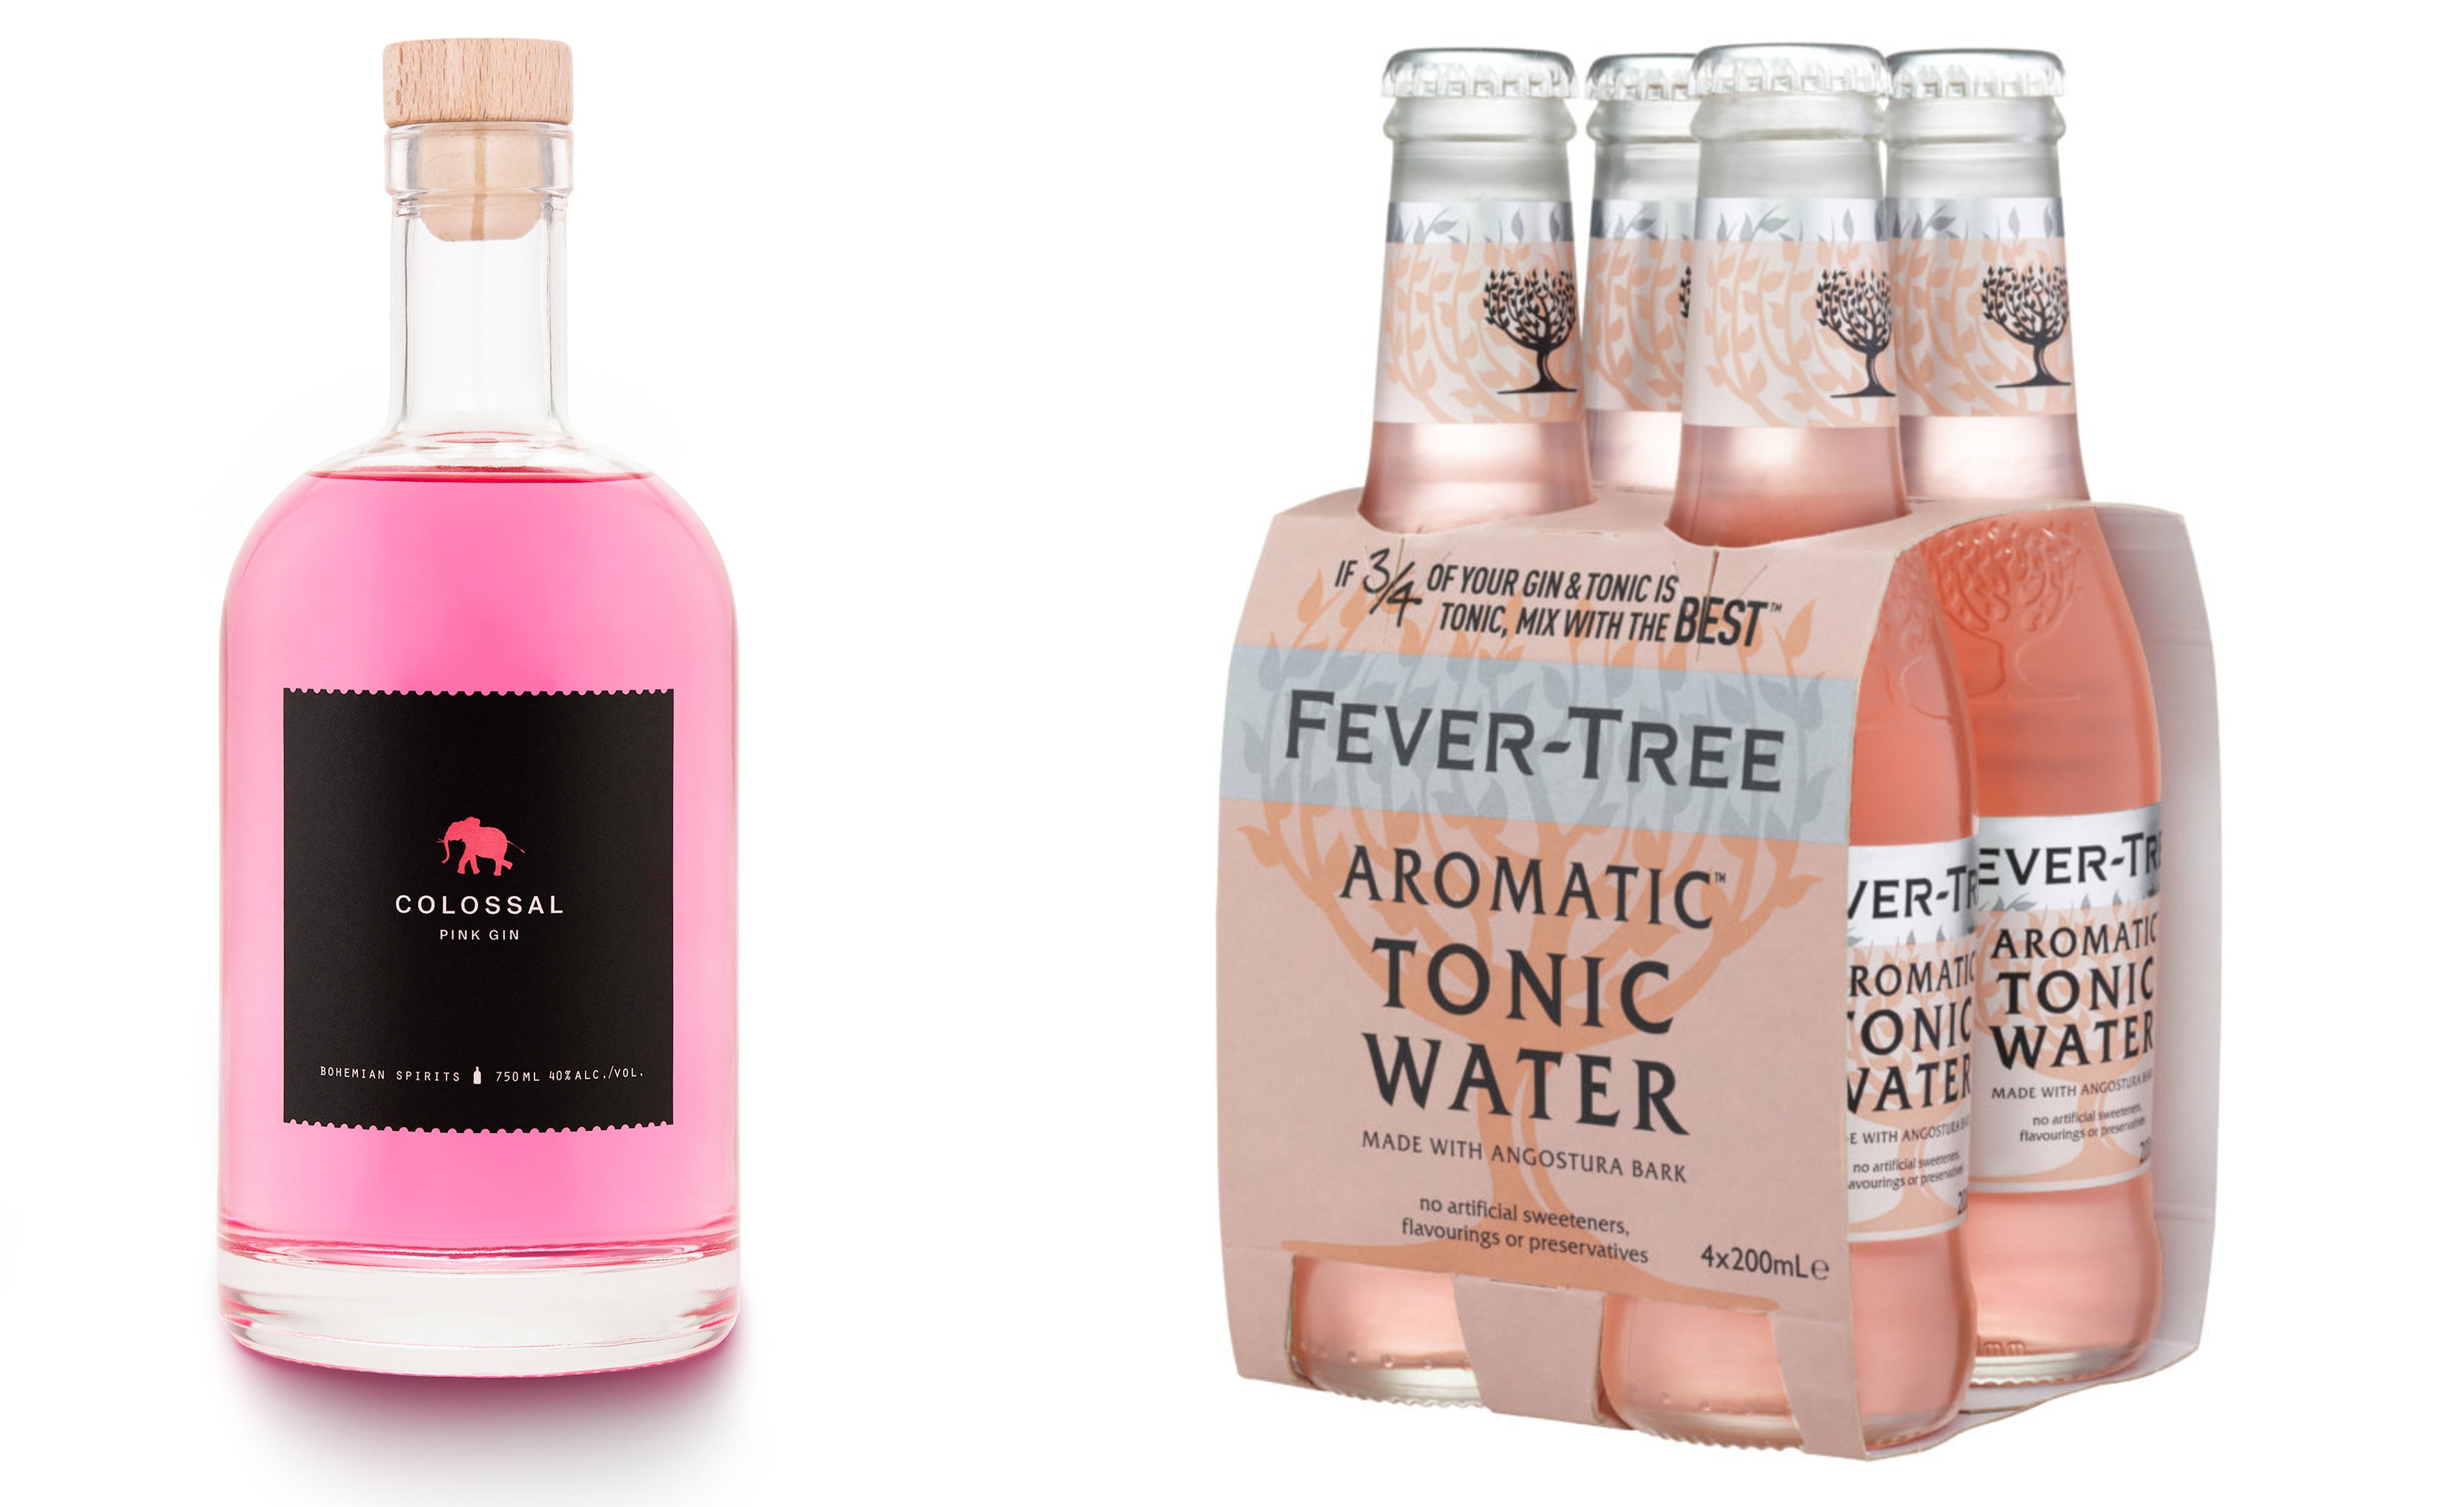 Bohemian Spirits Colossal Pink Gin Fever Tree Aromatic Tonic Water